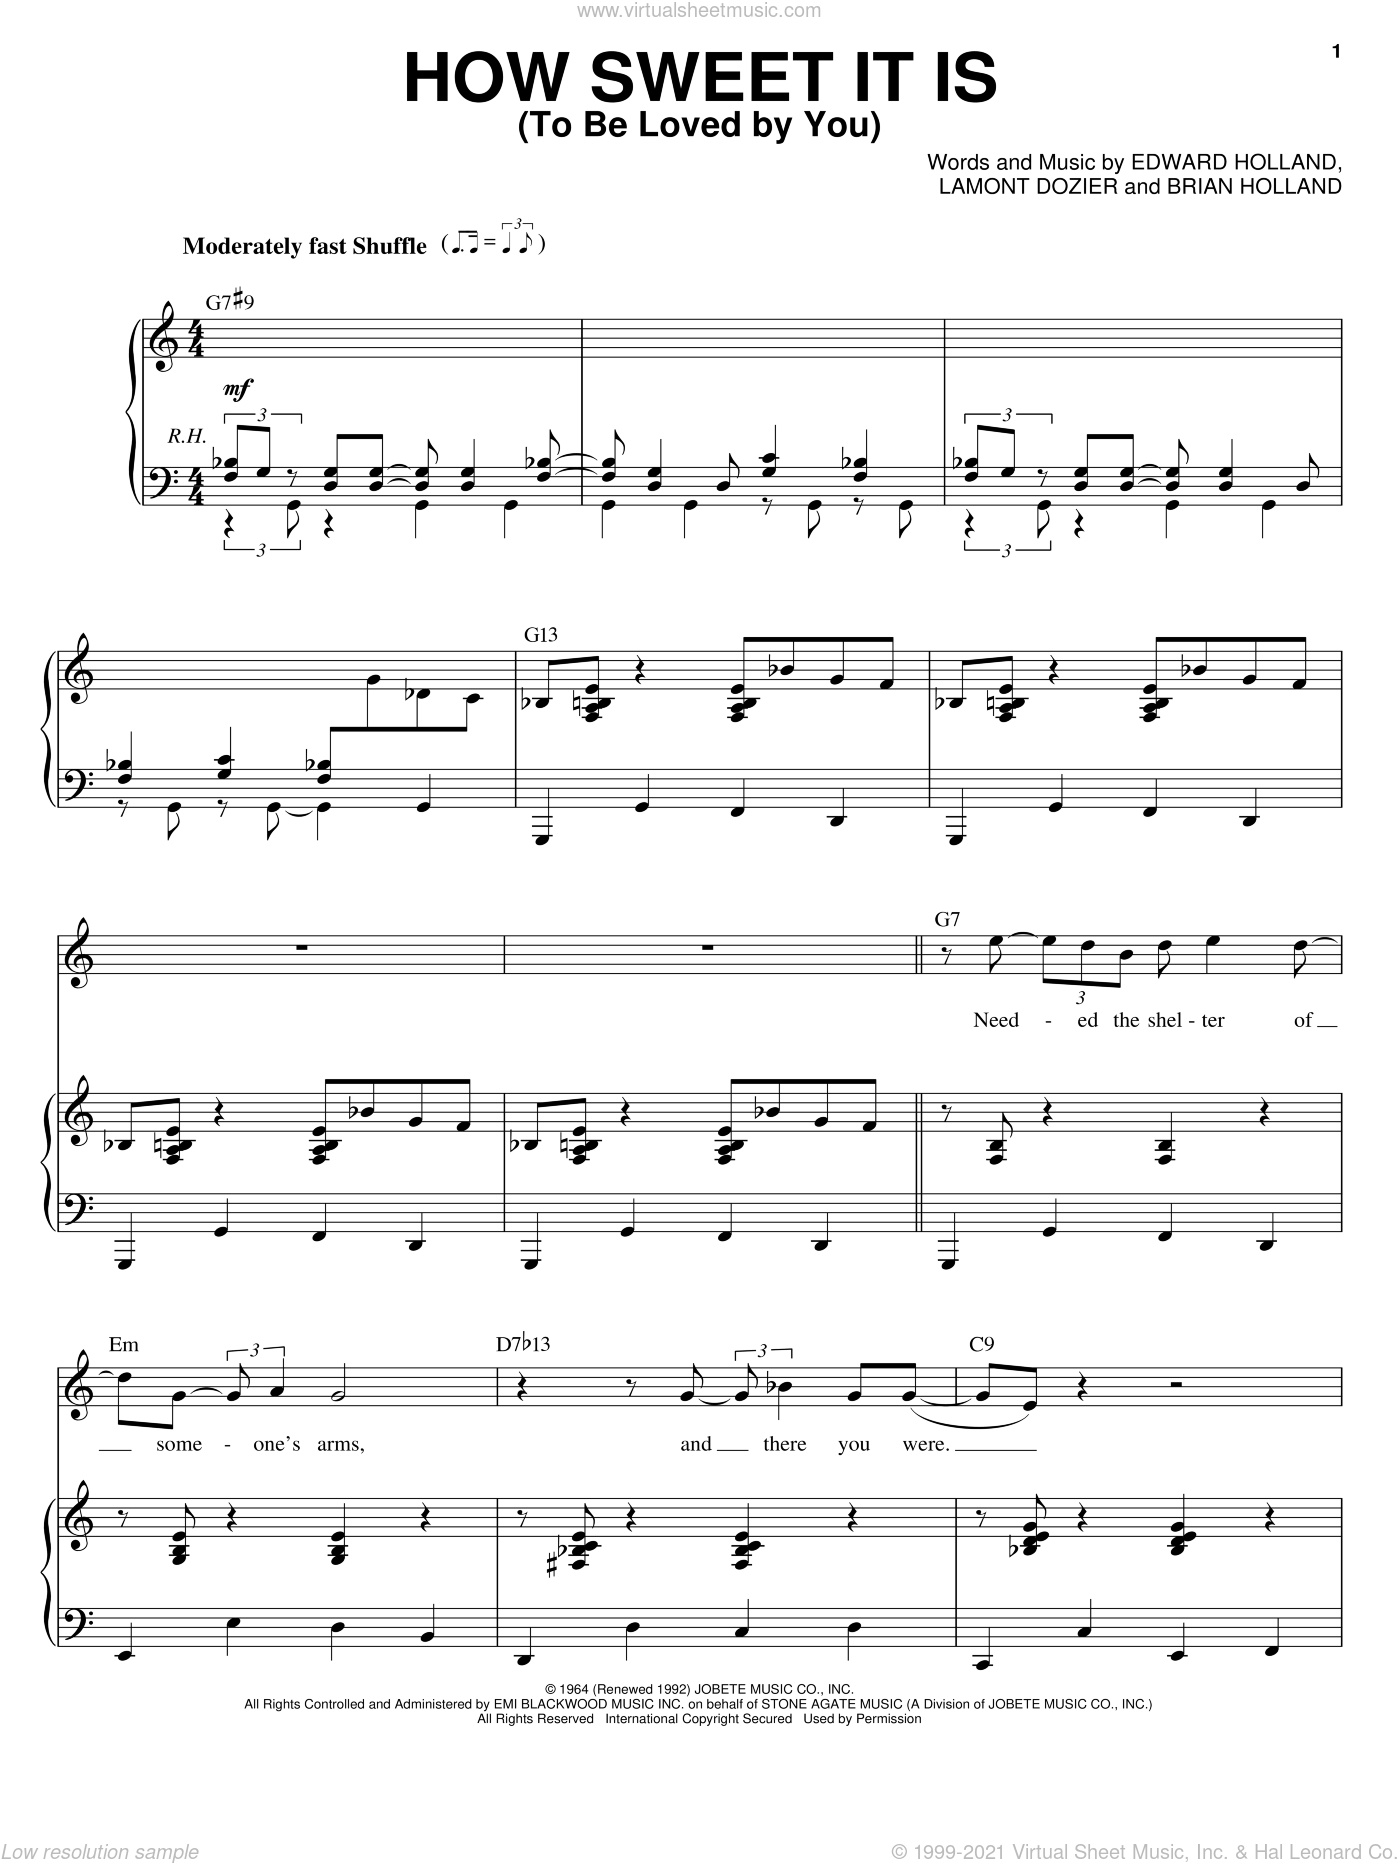 How Sweet It Is (To Be Loved By You) sheet music for voice and piano by Michael Buble, James Taylor, Marvin Gaye, Brian Holland, Eddie Holland and Lamont Dozier, intermediate skill level